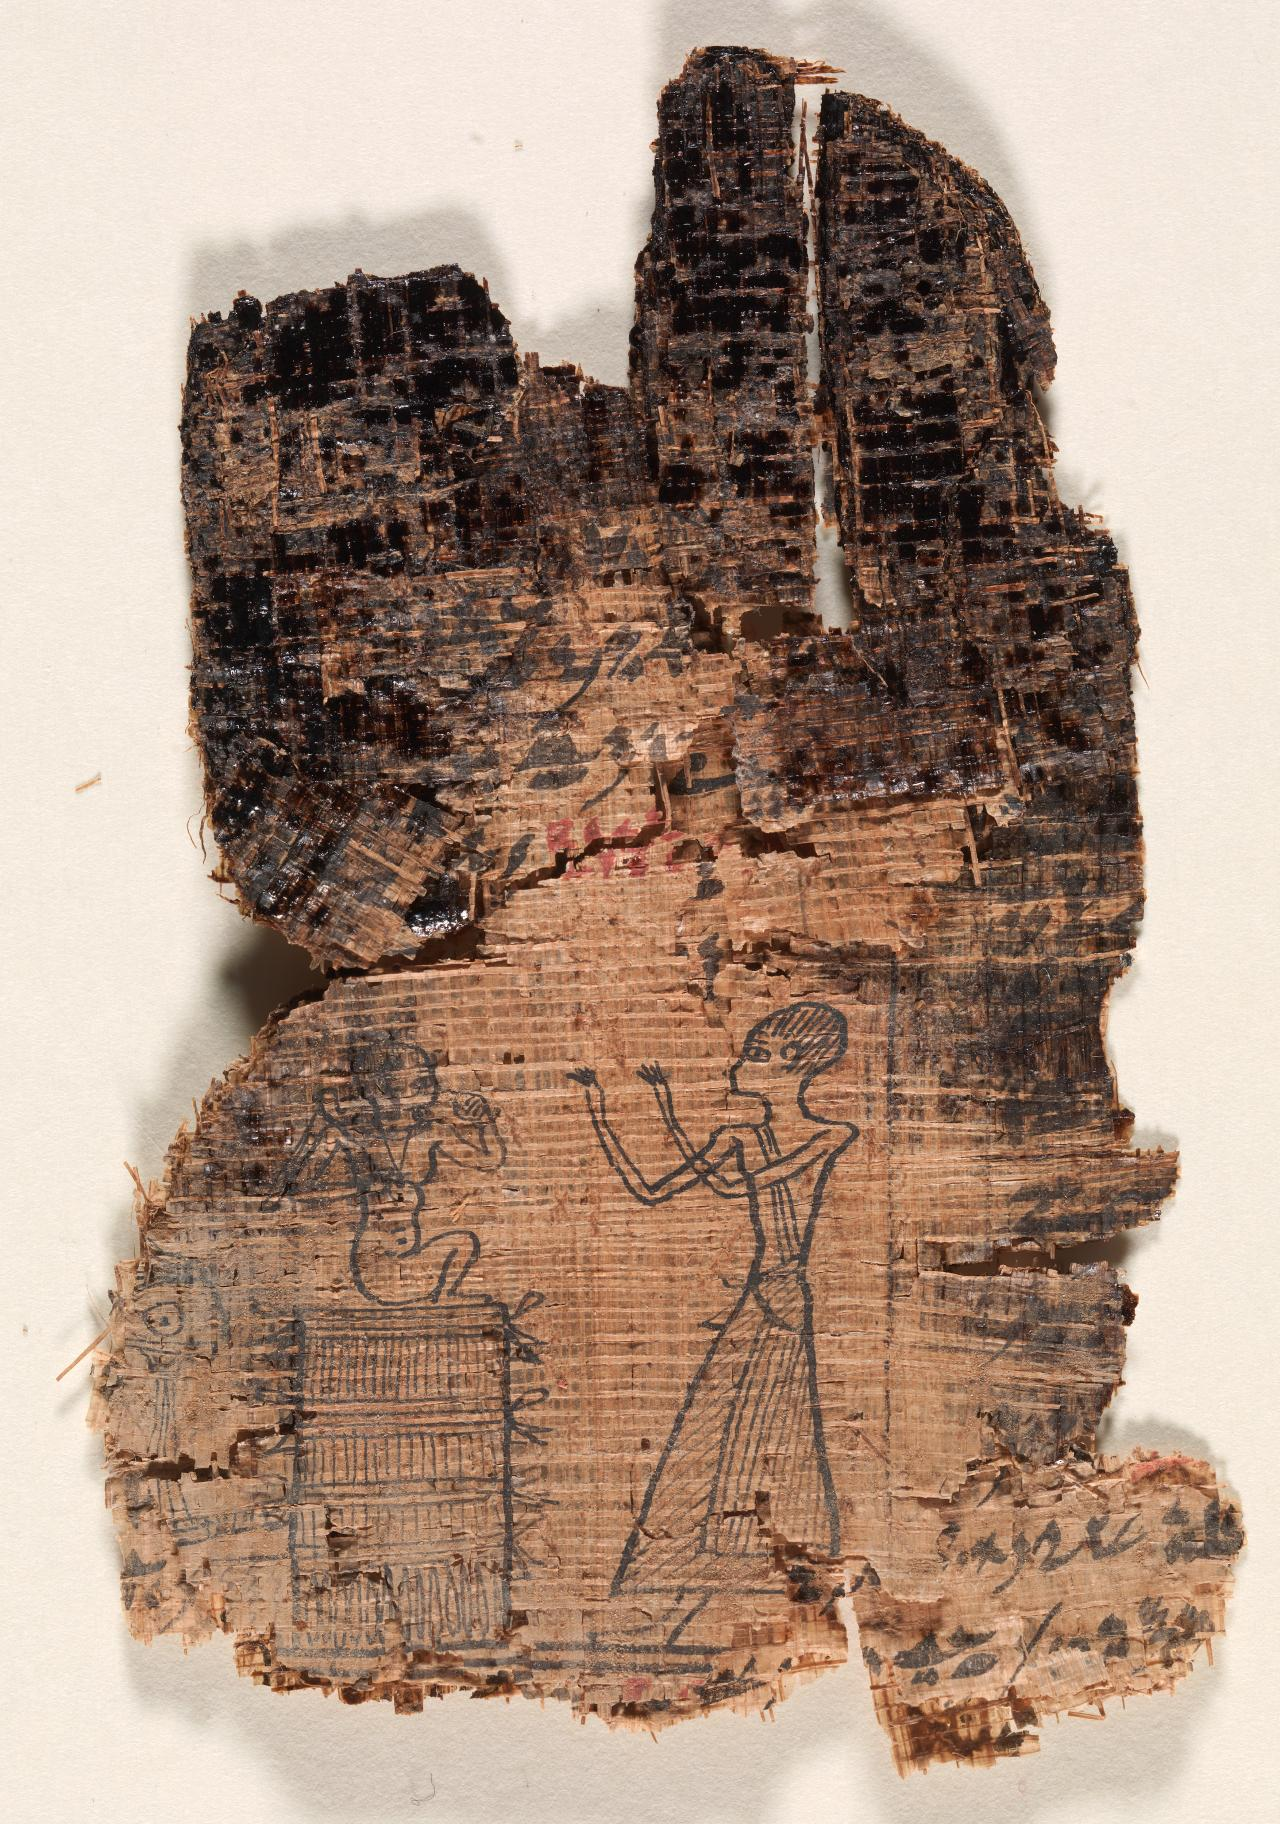 Fragments of inscribed papyrus